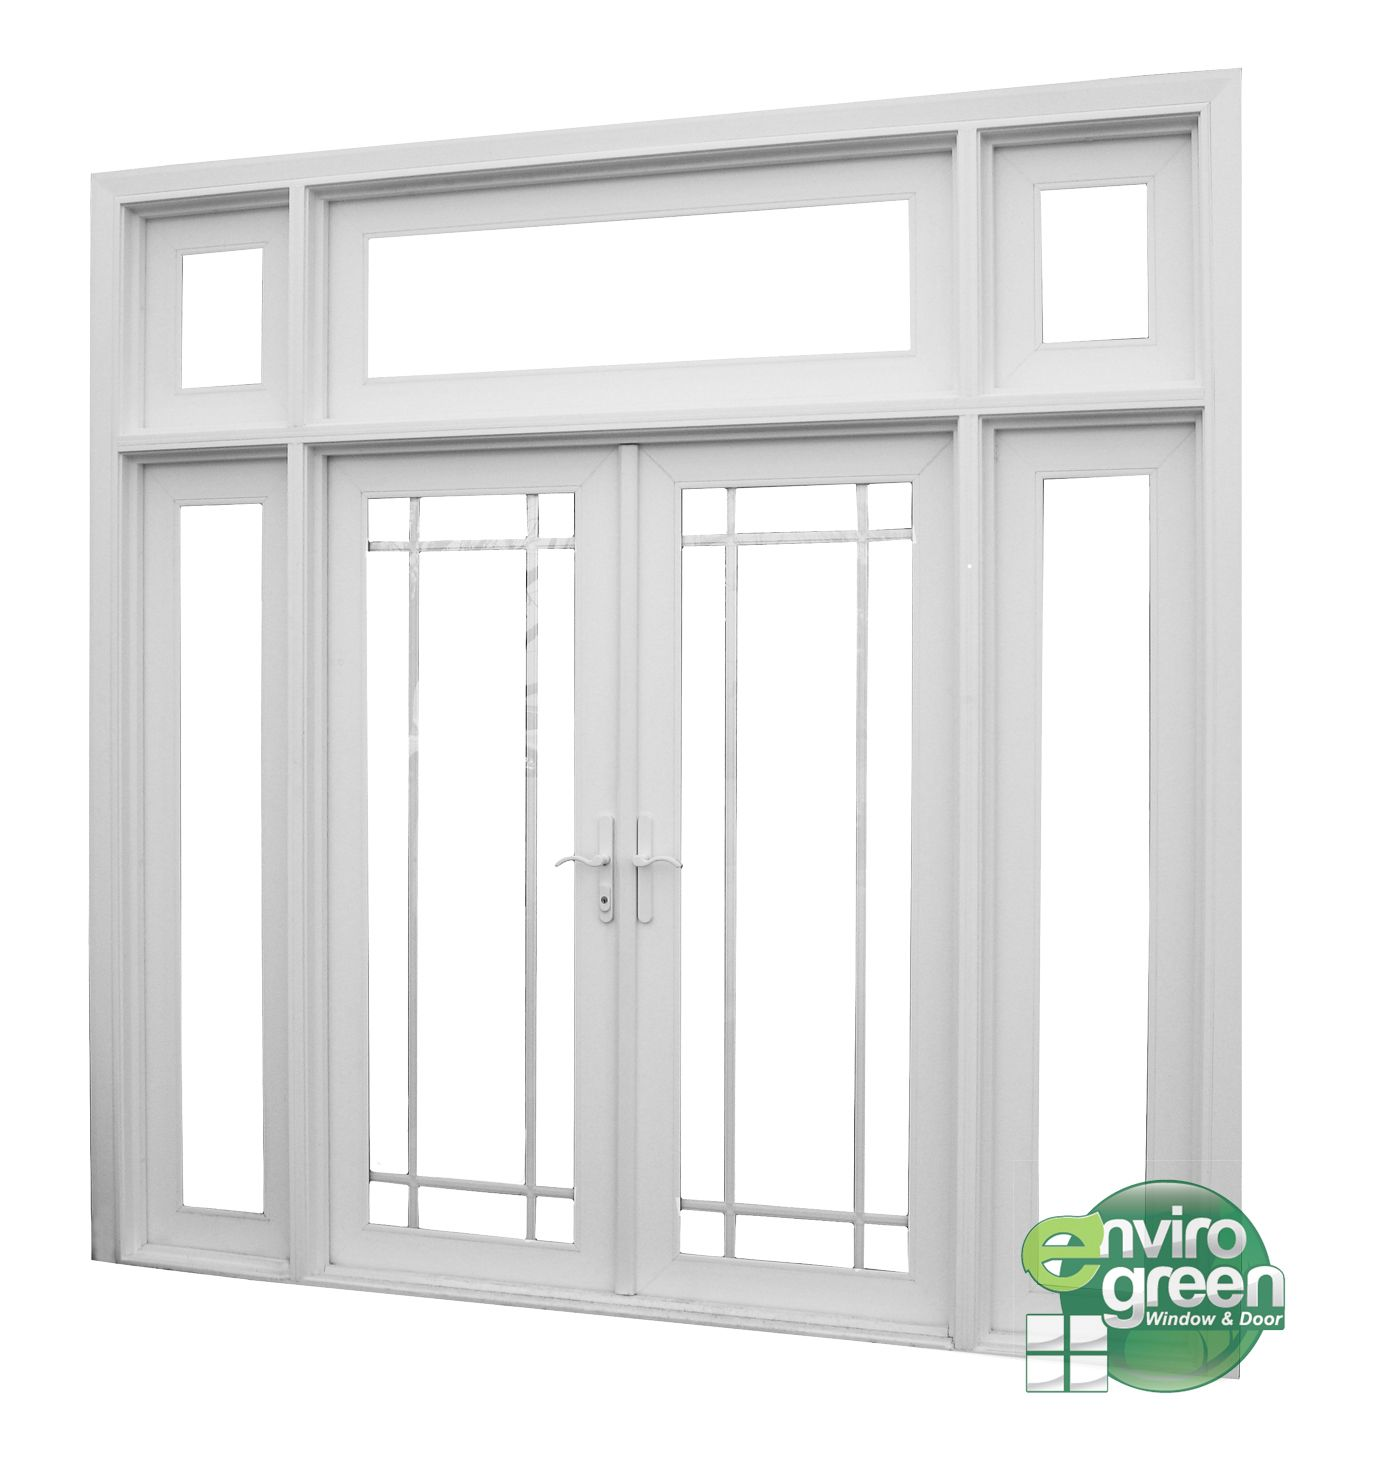 Single patio door with side lights french door envirogreen windows doors duarte for Interior french doors